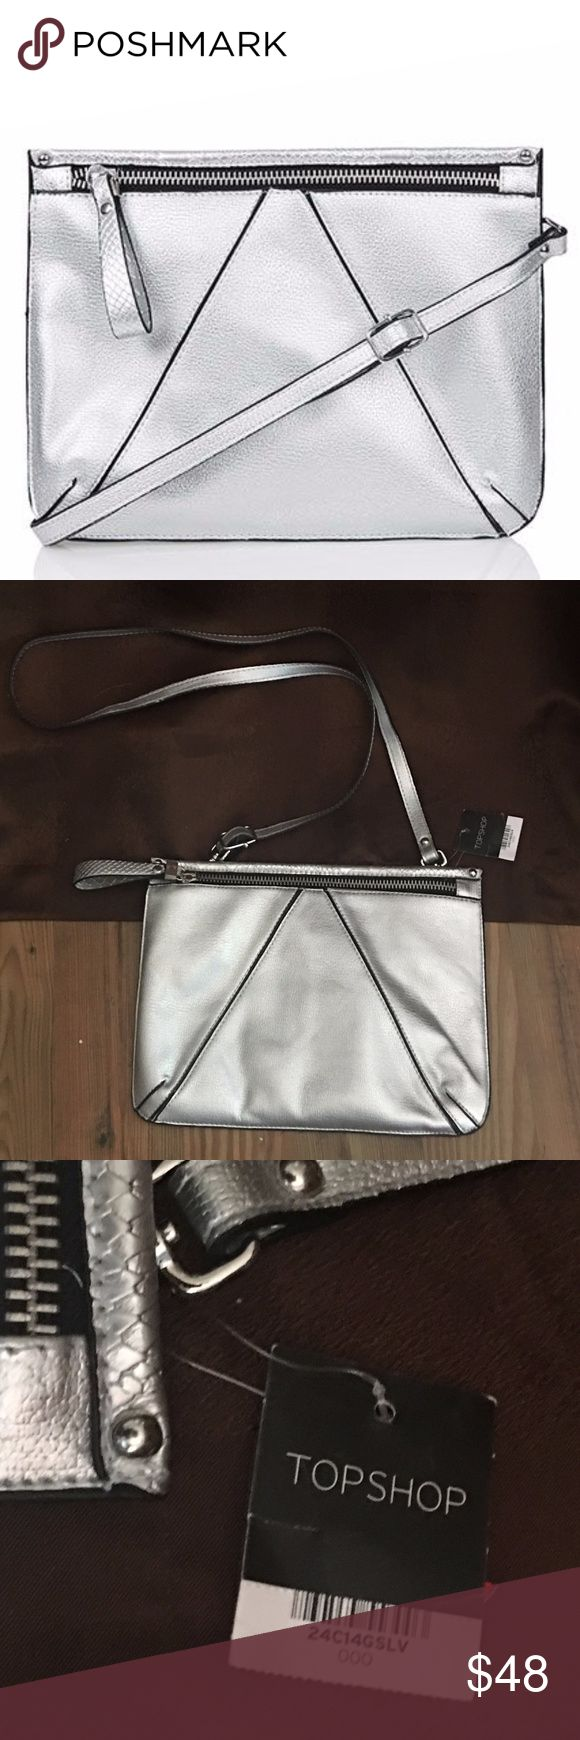 Topshop V-Panel Clutch Bag or  CrossBody  Silver A cool clutch. You can tote it to work, and then when you're off the clock, just remove the strap for an easy, clutch-like companion. SMOKE FREE HOME SHIPS SAME DAY Topshop Bags Crossbody Bags